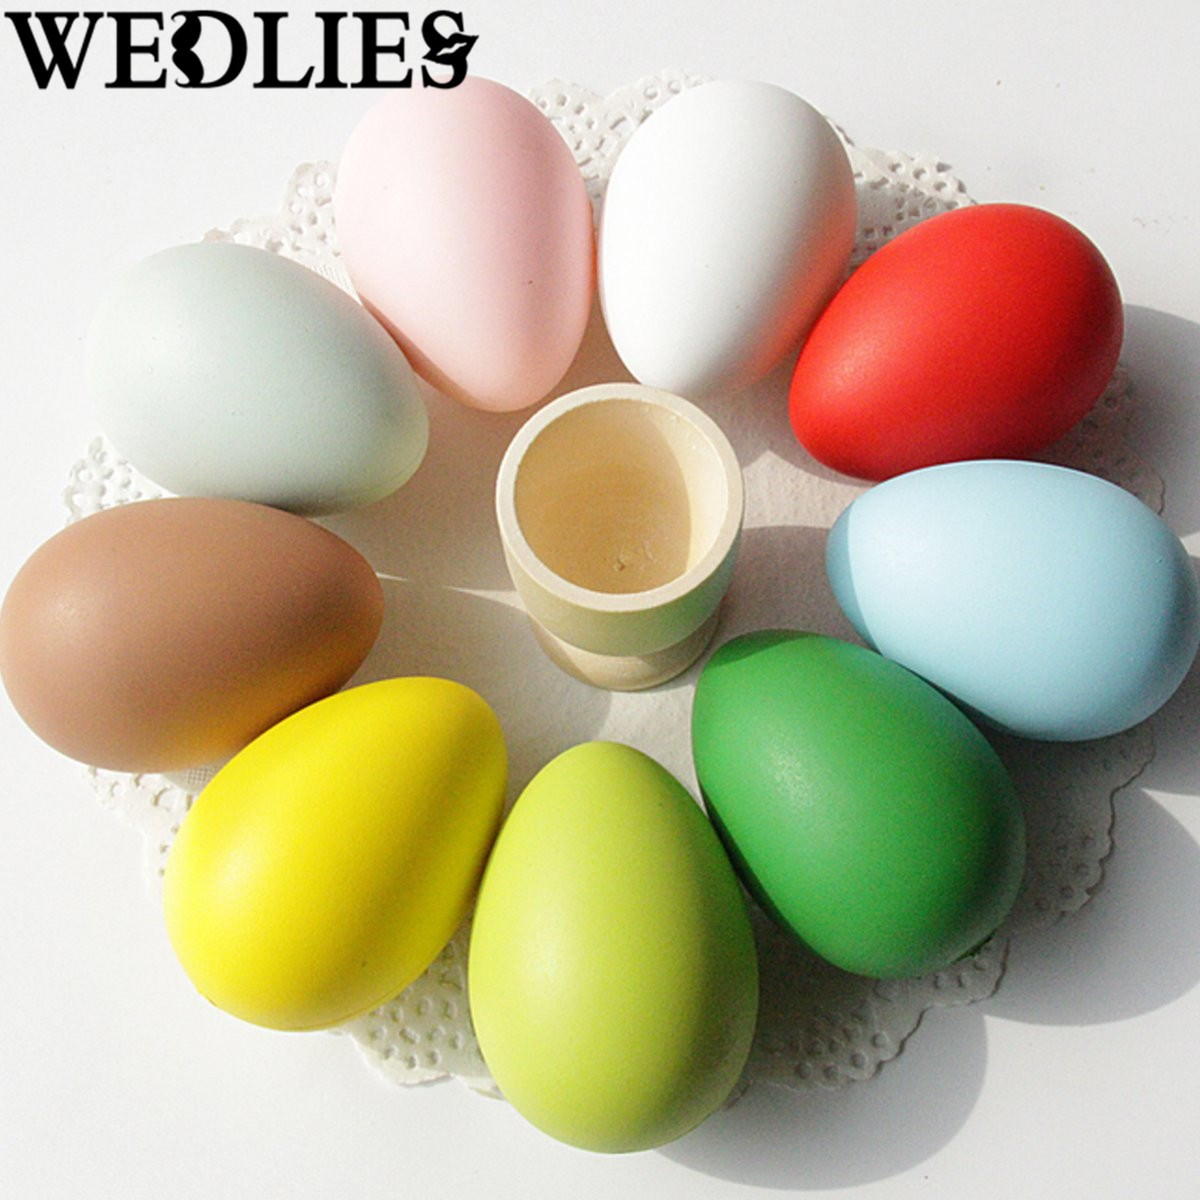 Wholesale easter gifts best oval easter basket with wholesale awesome pcs bright colors plastic easter eggs simulation easter events party diy decorative gadgets assortment toy gifts ornamentin party diy decorations negle Gallery